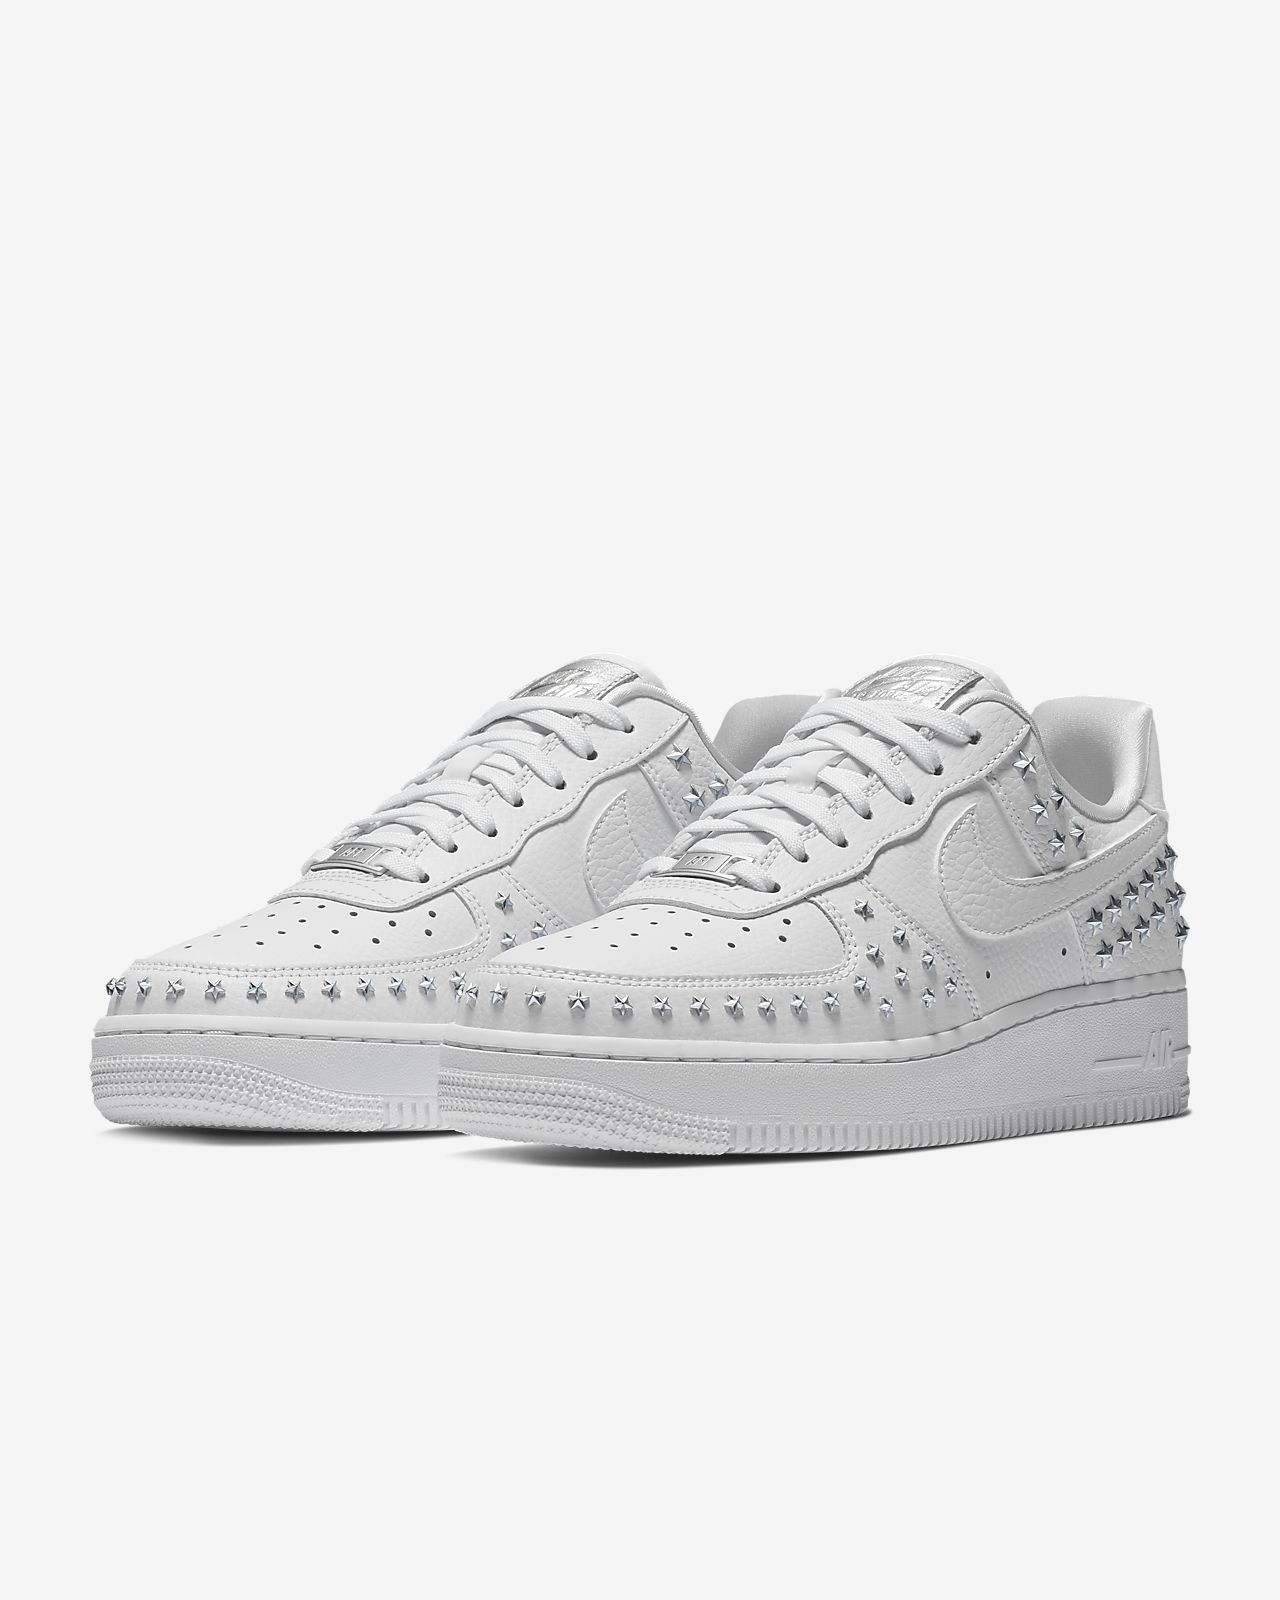 promo code cce1d 8b5f4 ... Nike Air Force 1 07 XX Studded Womens Shoe